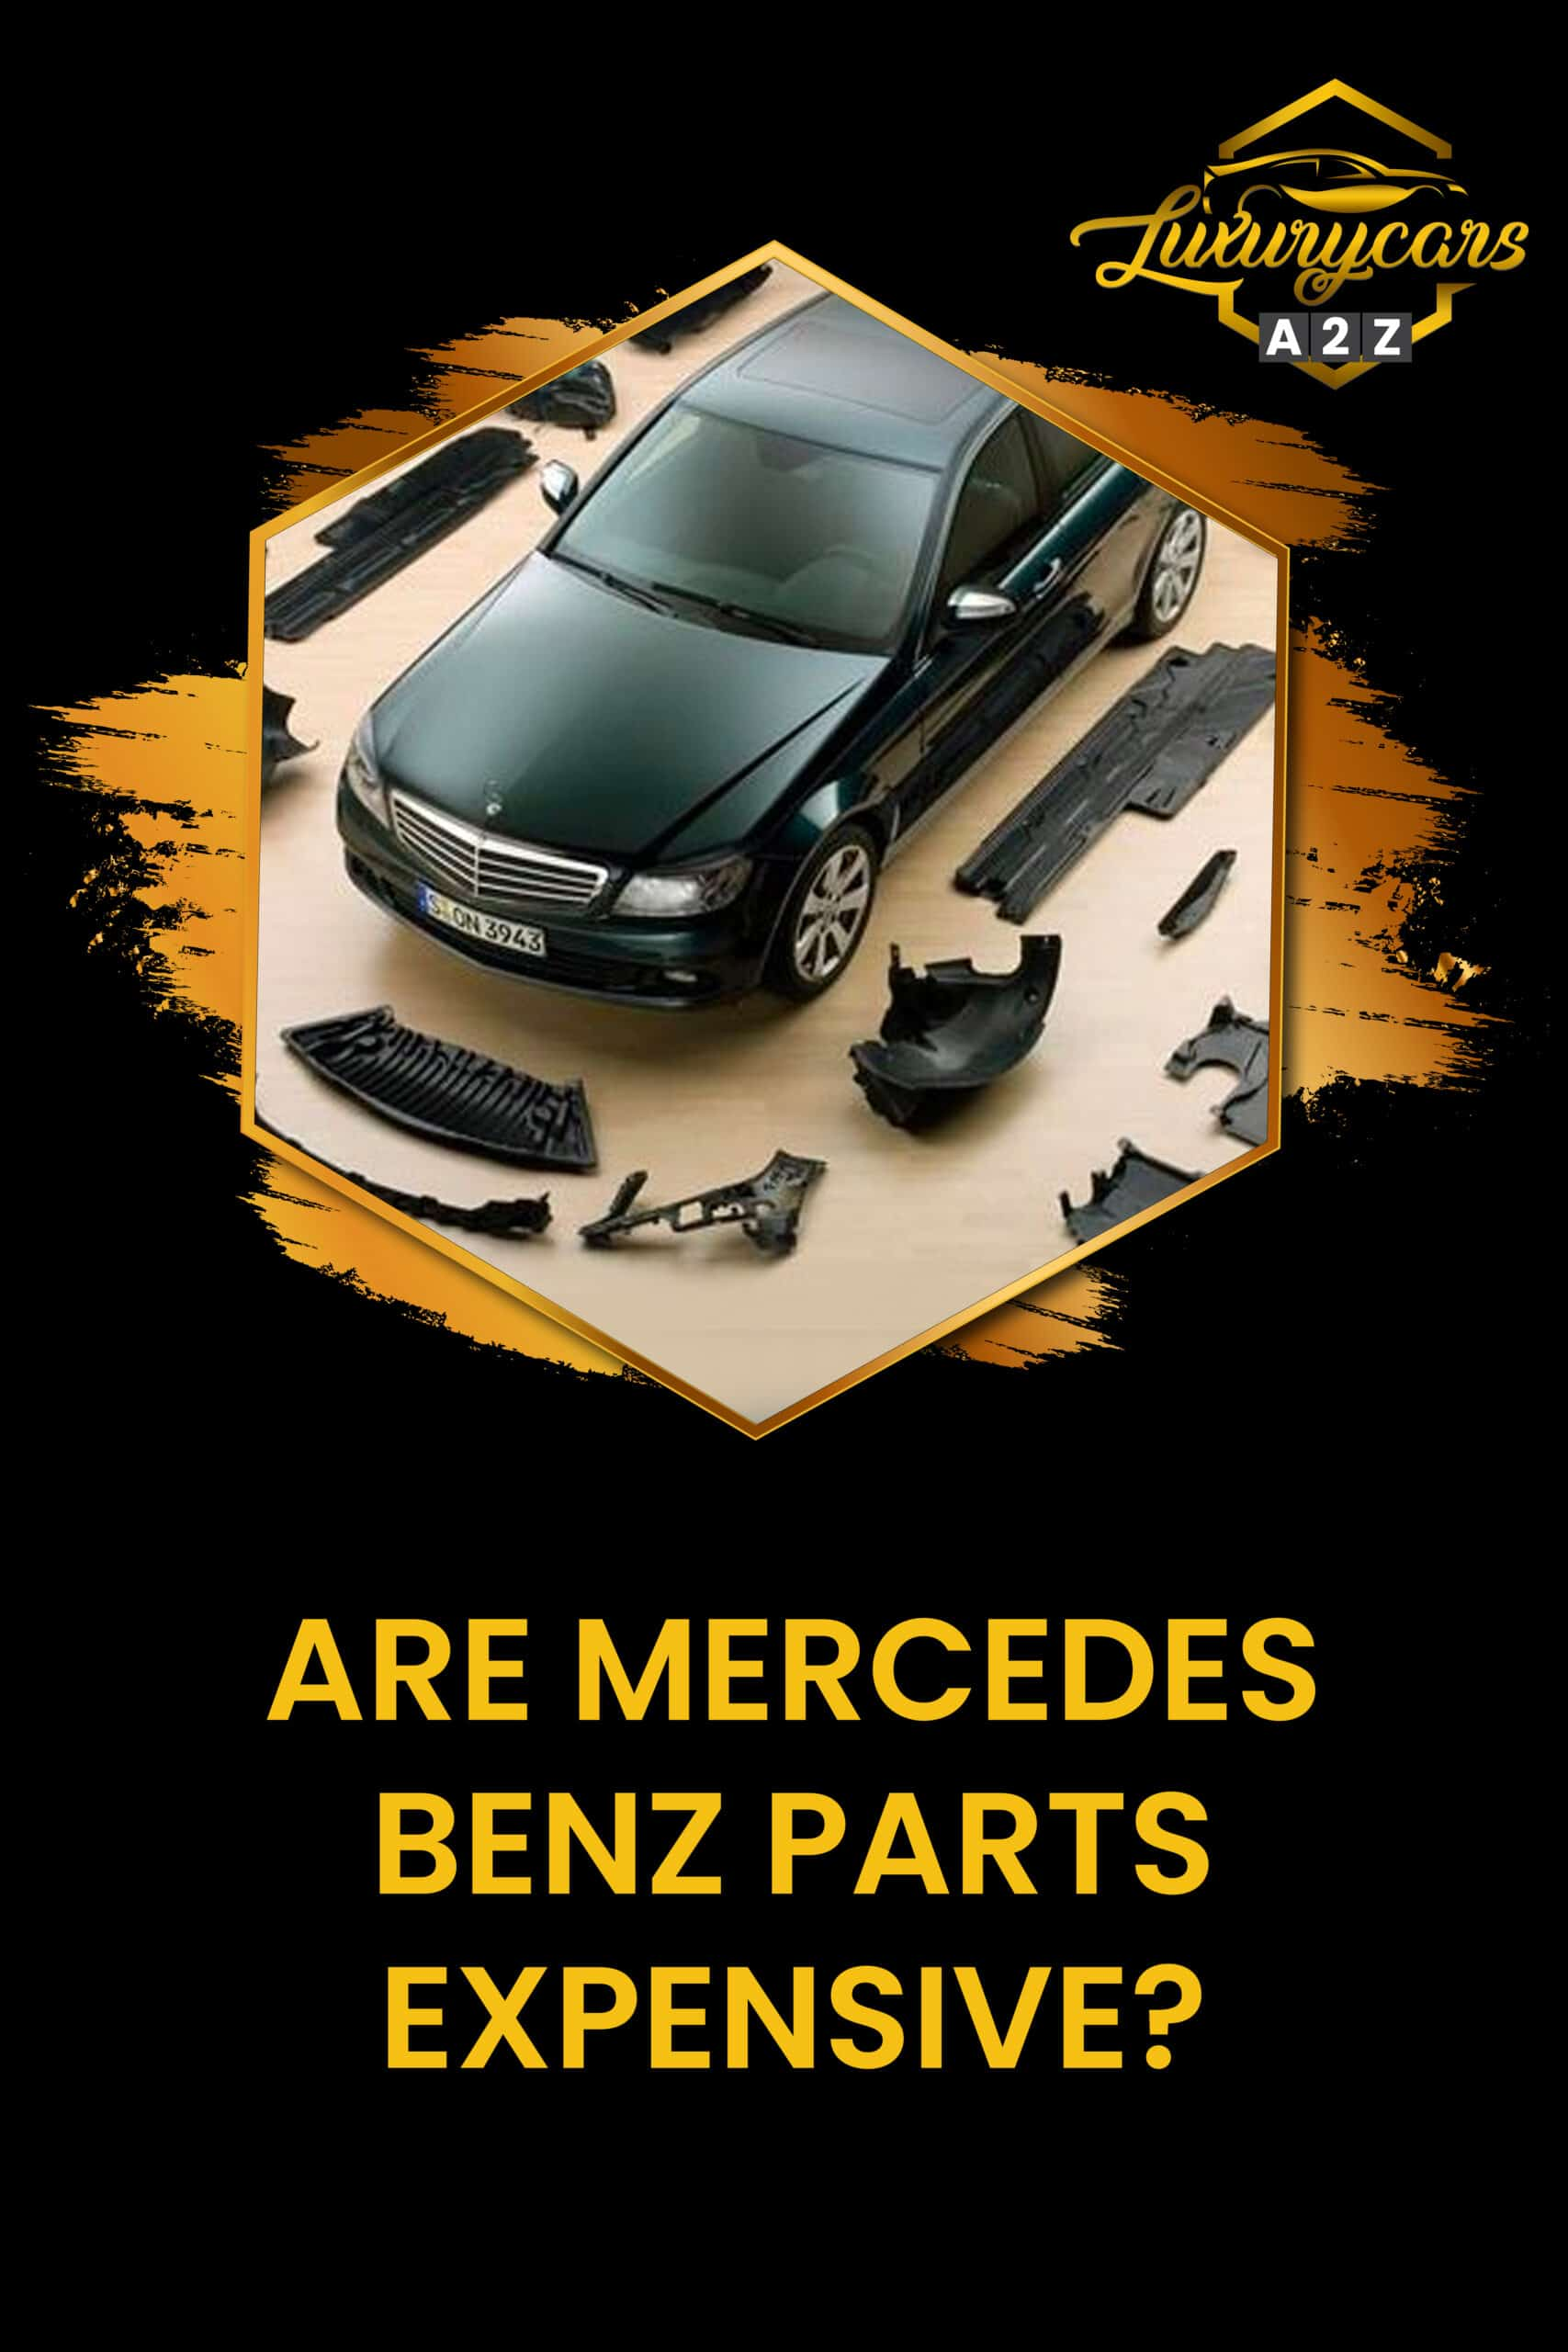 Are Mercedes Benz parts expensive?